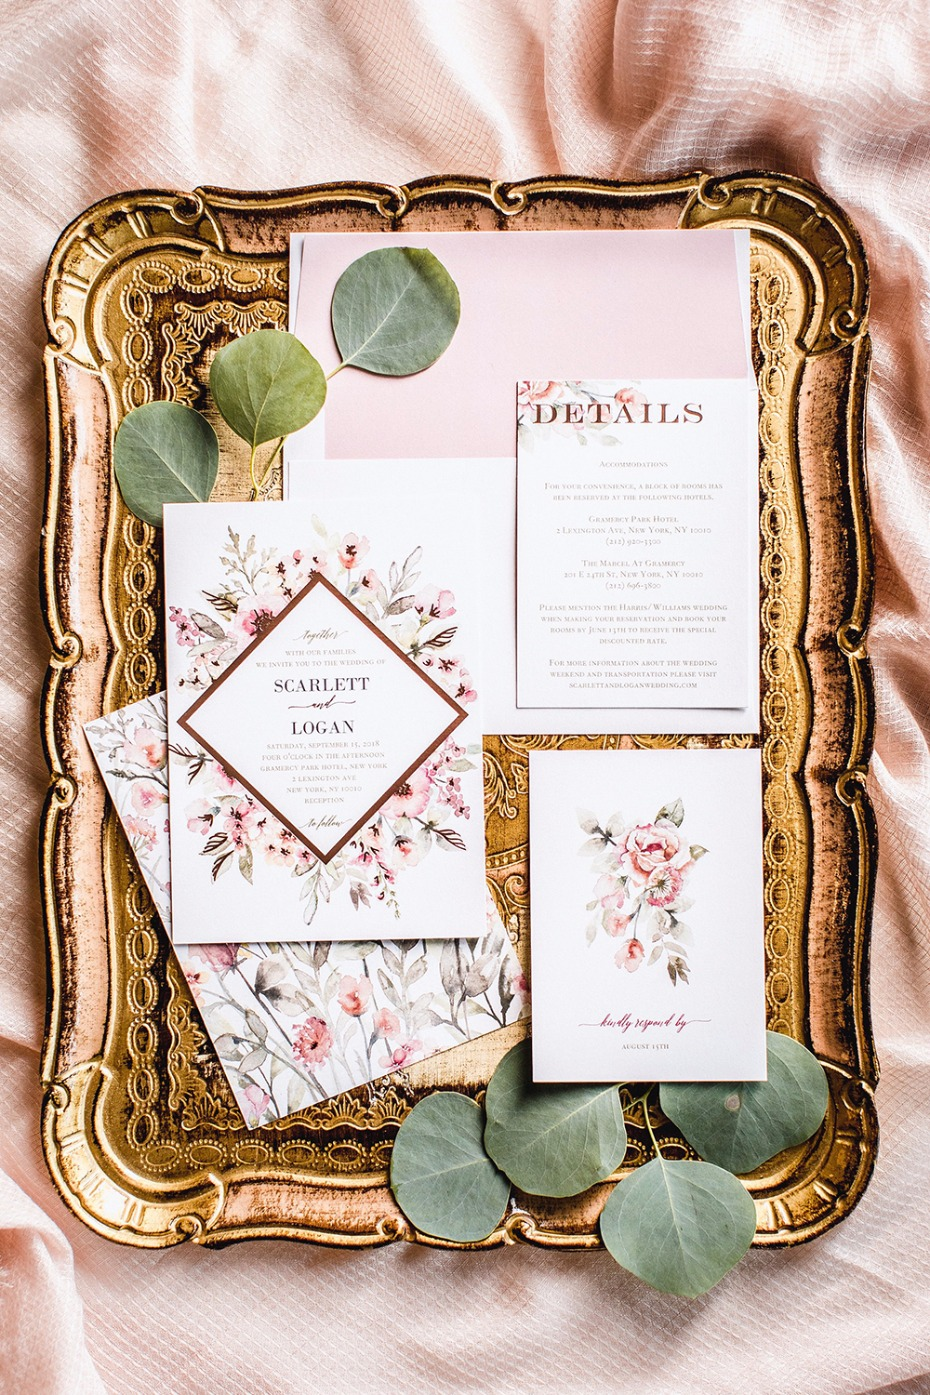 11 Practical Tips for Sending the Perfect Wedding Invitations